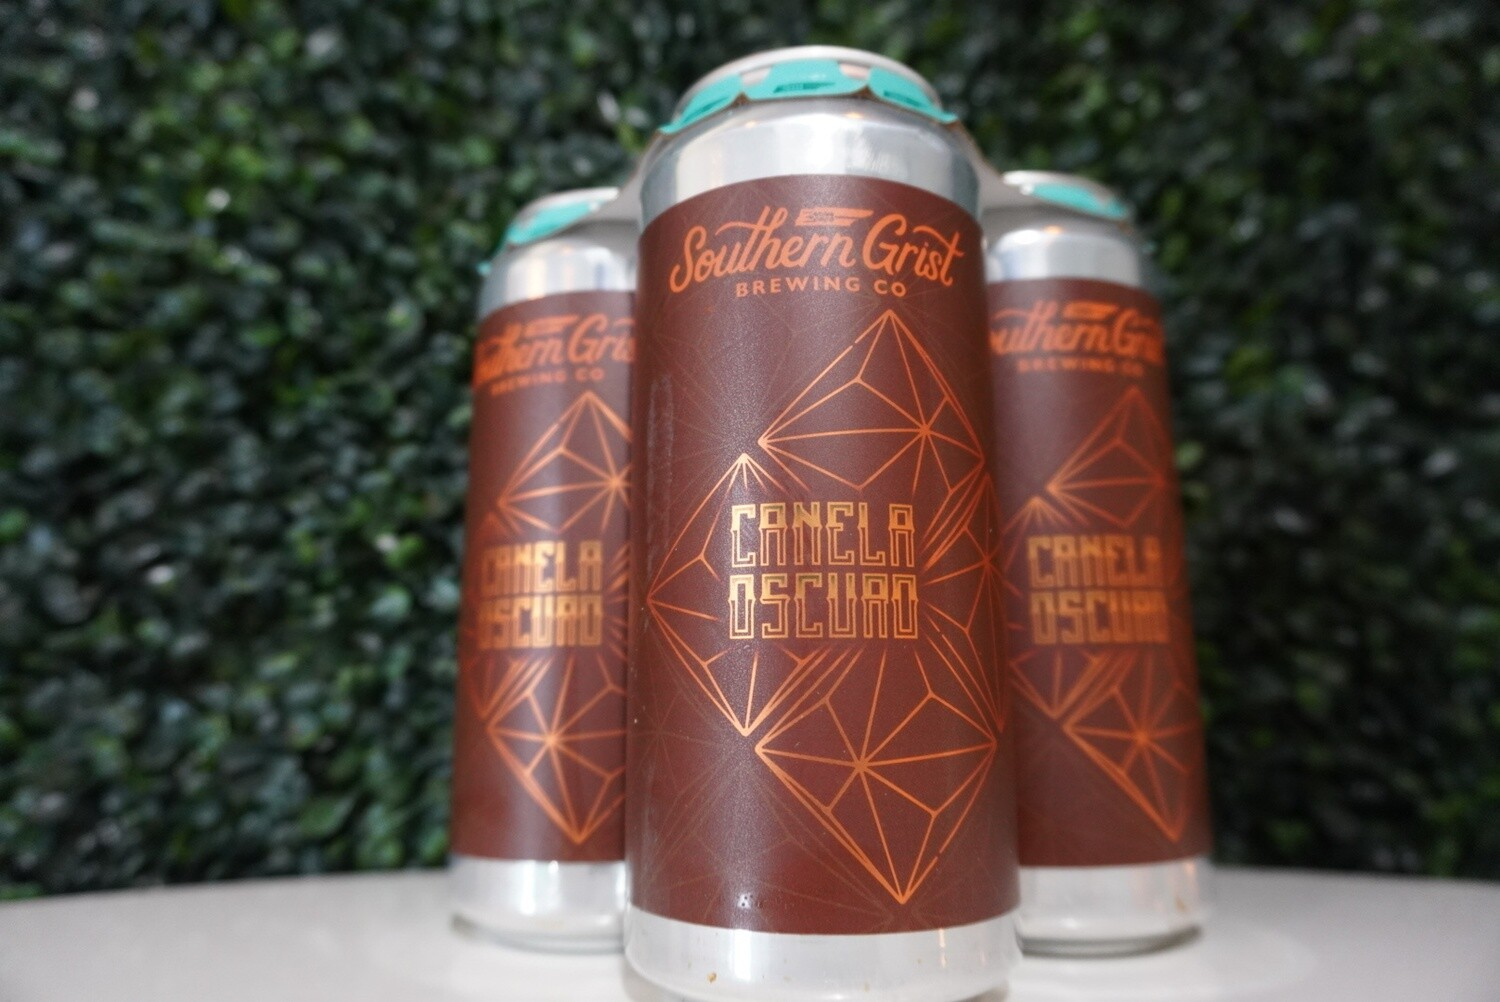 Southern Grist - Canela Oscuro - Stout - 6.7% ABV - 16oz Can